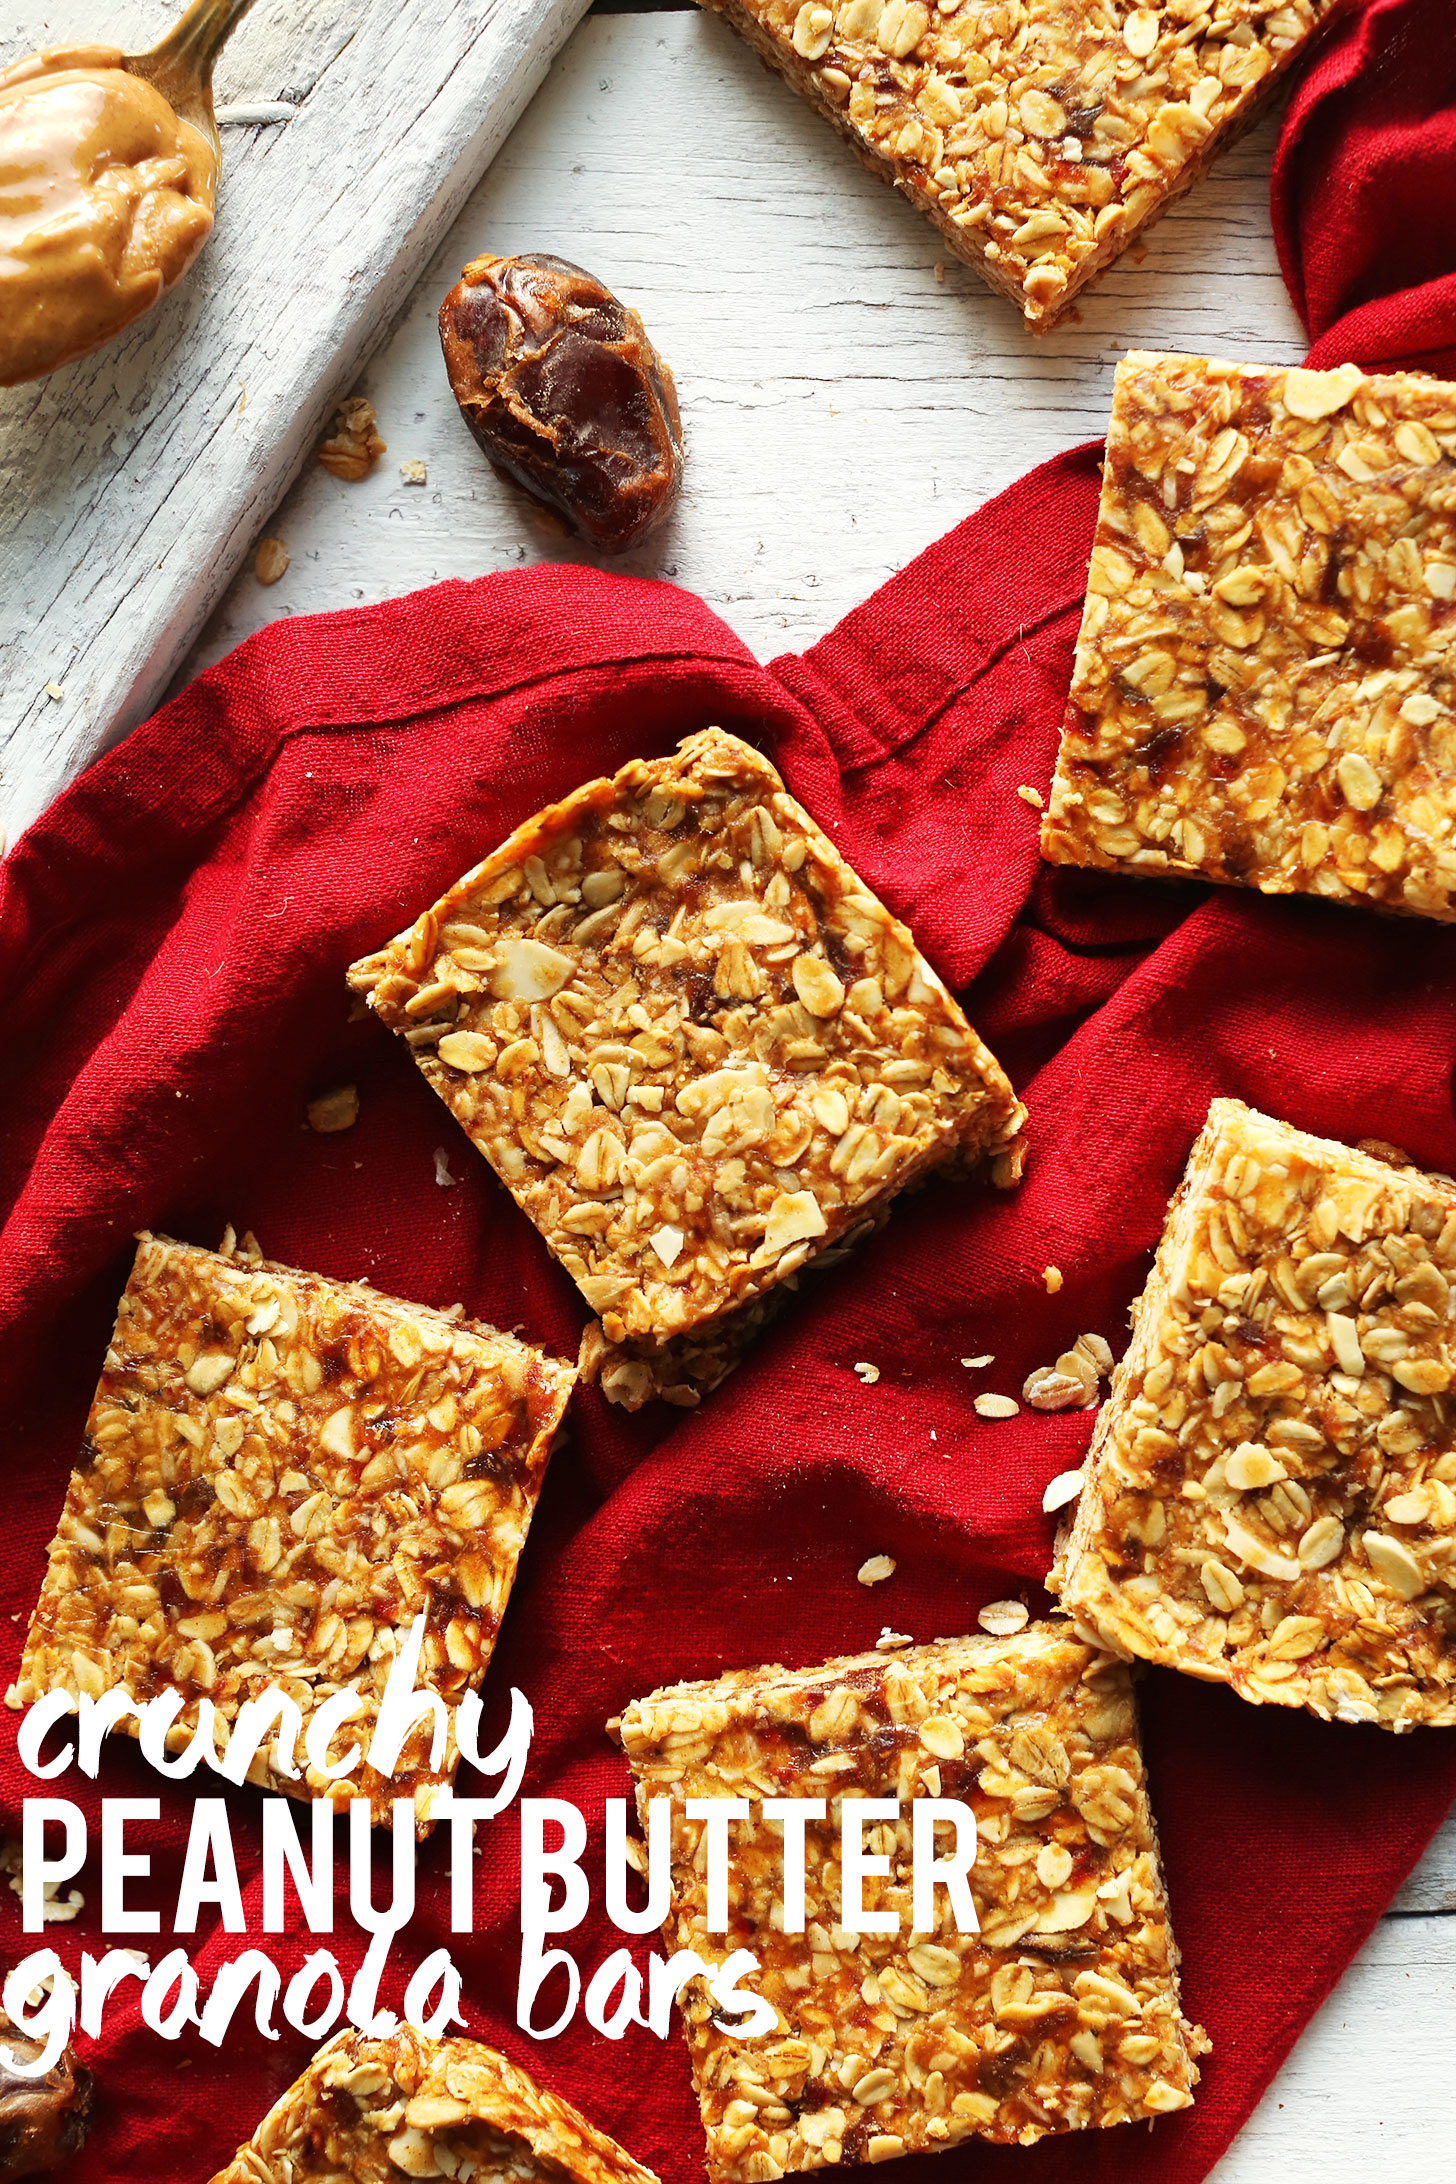 Superbe Crunchy Homemade Peanut Butter Granola Bars Resting On A Linen